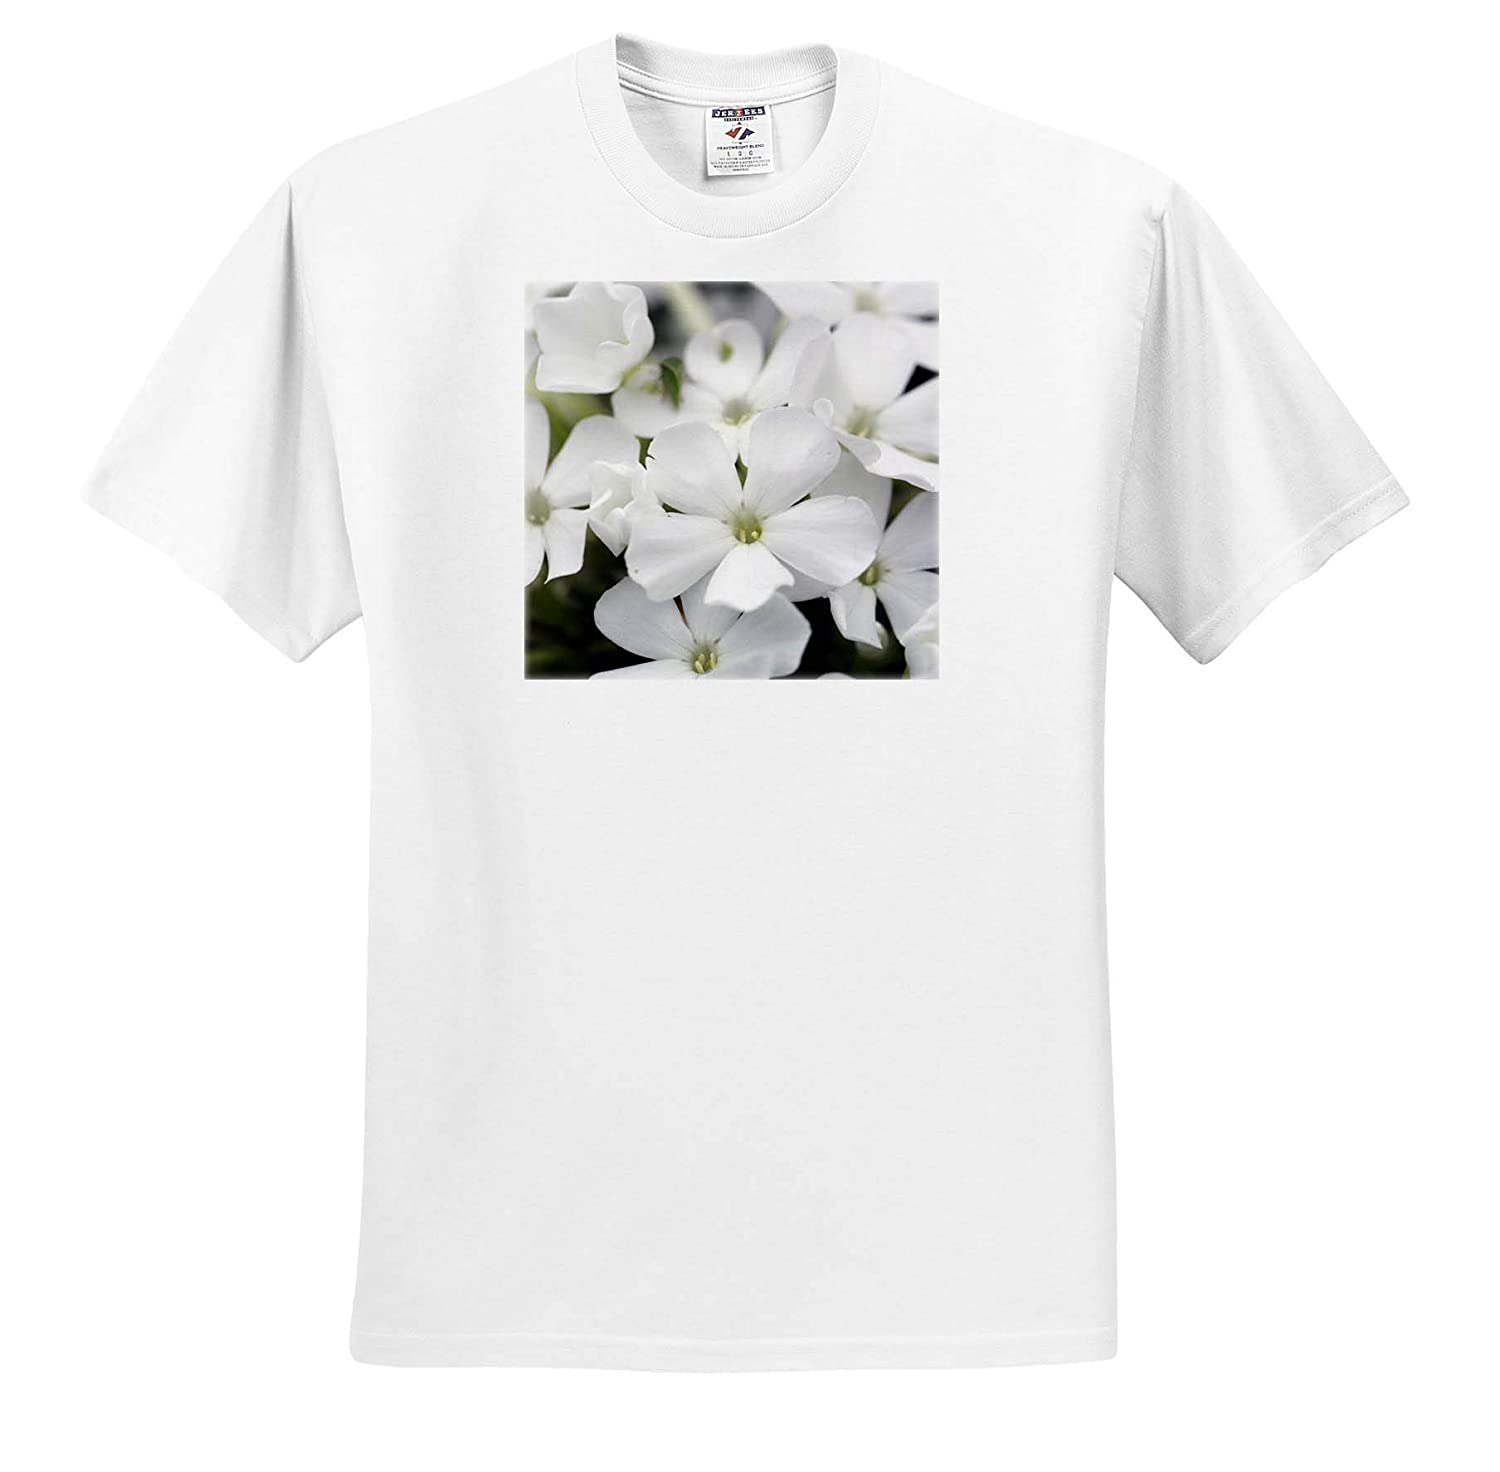 Flowers Macro Photograph of White Phlox Blooming in a Garden 3dRose Stamp City ts/_316773 - Adult T-Shirt XL